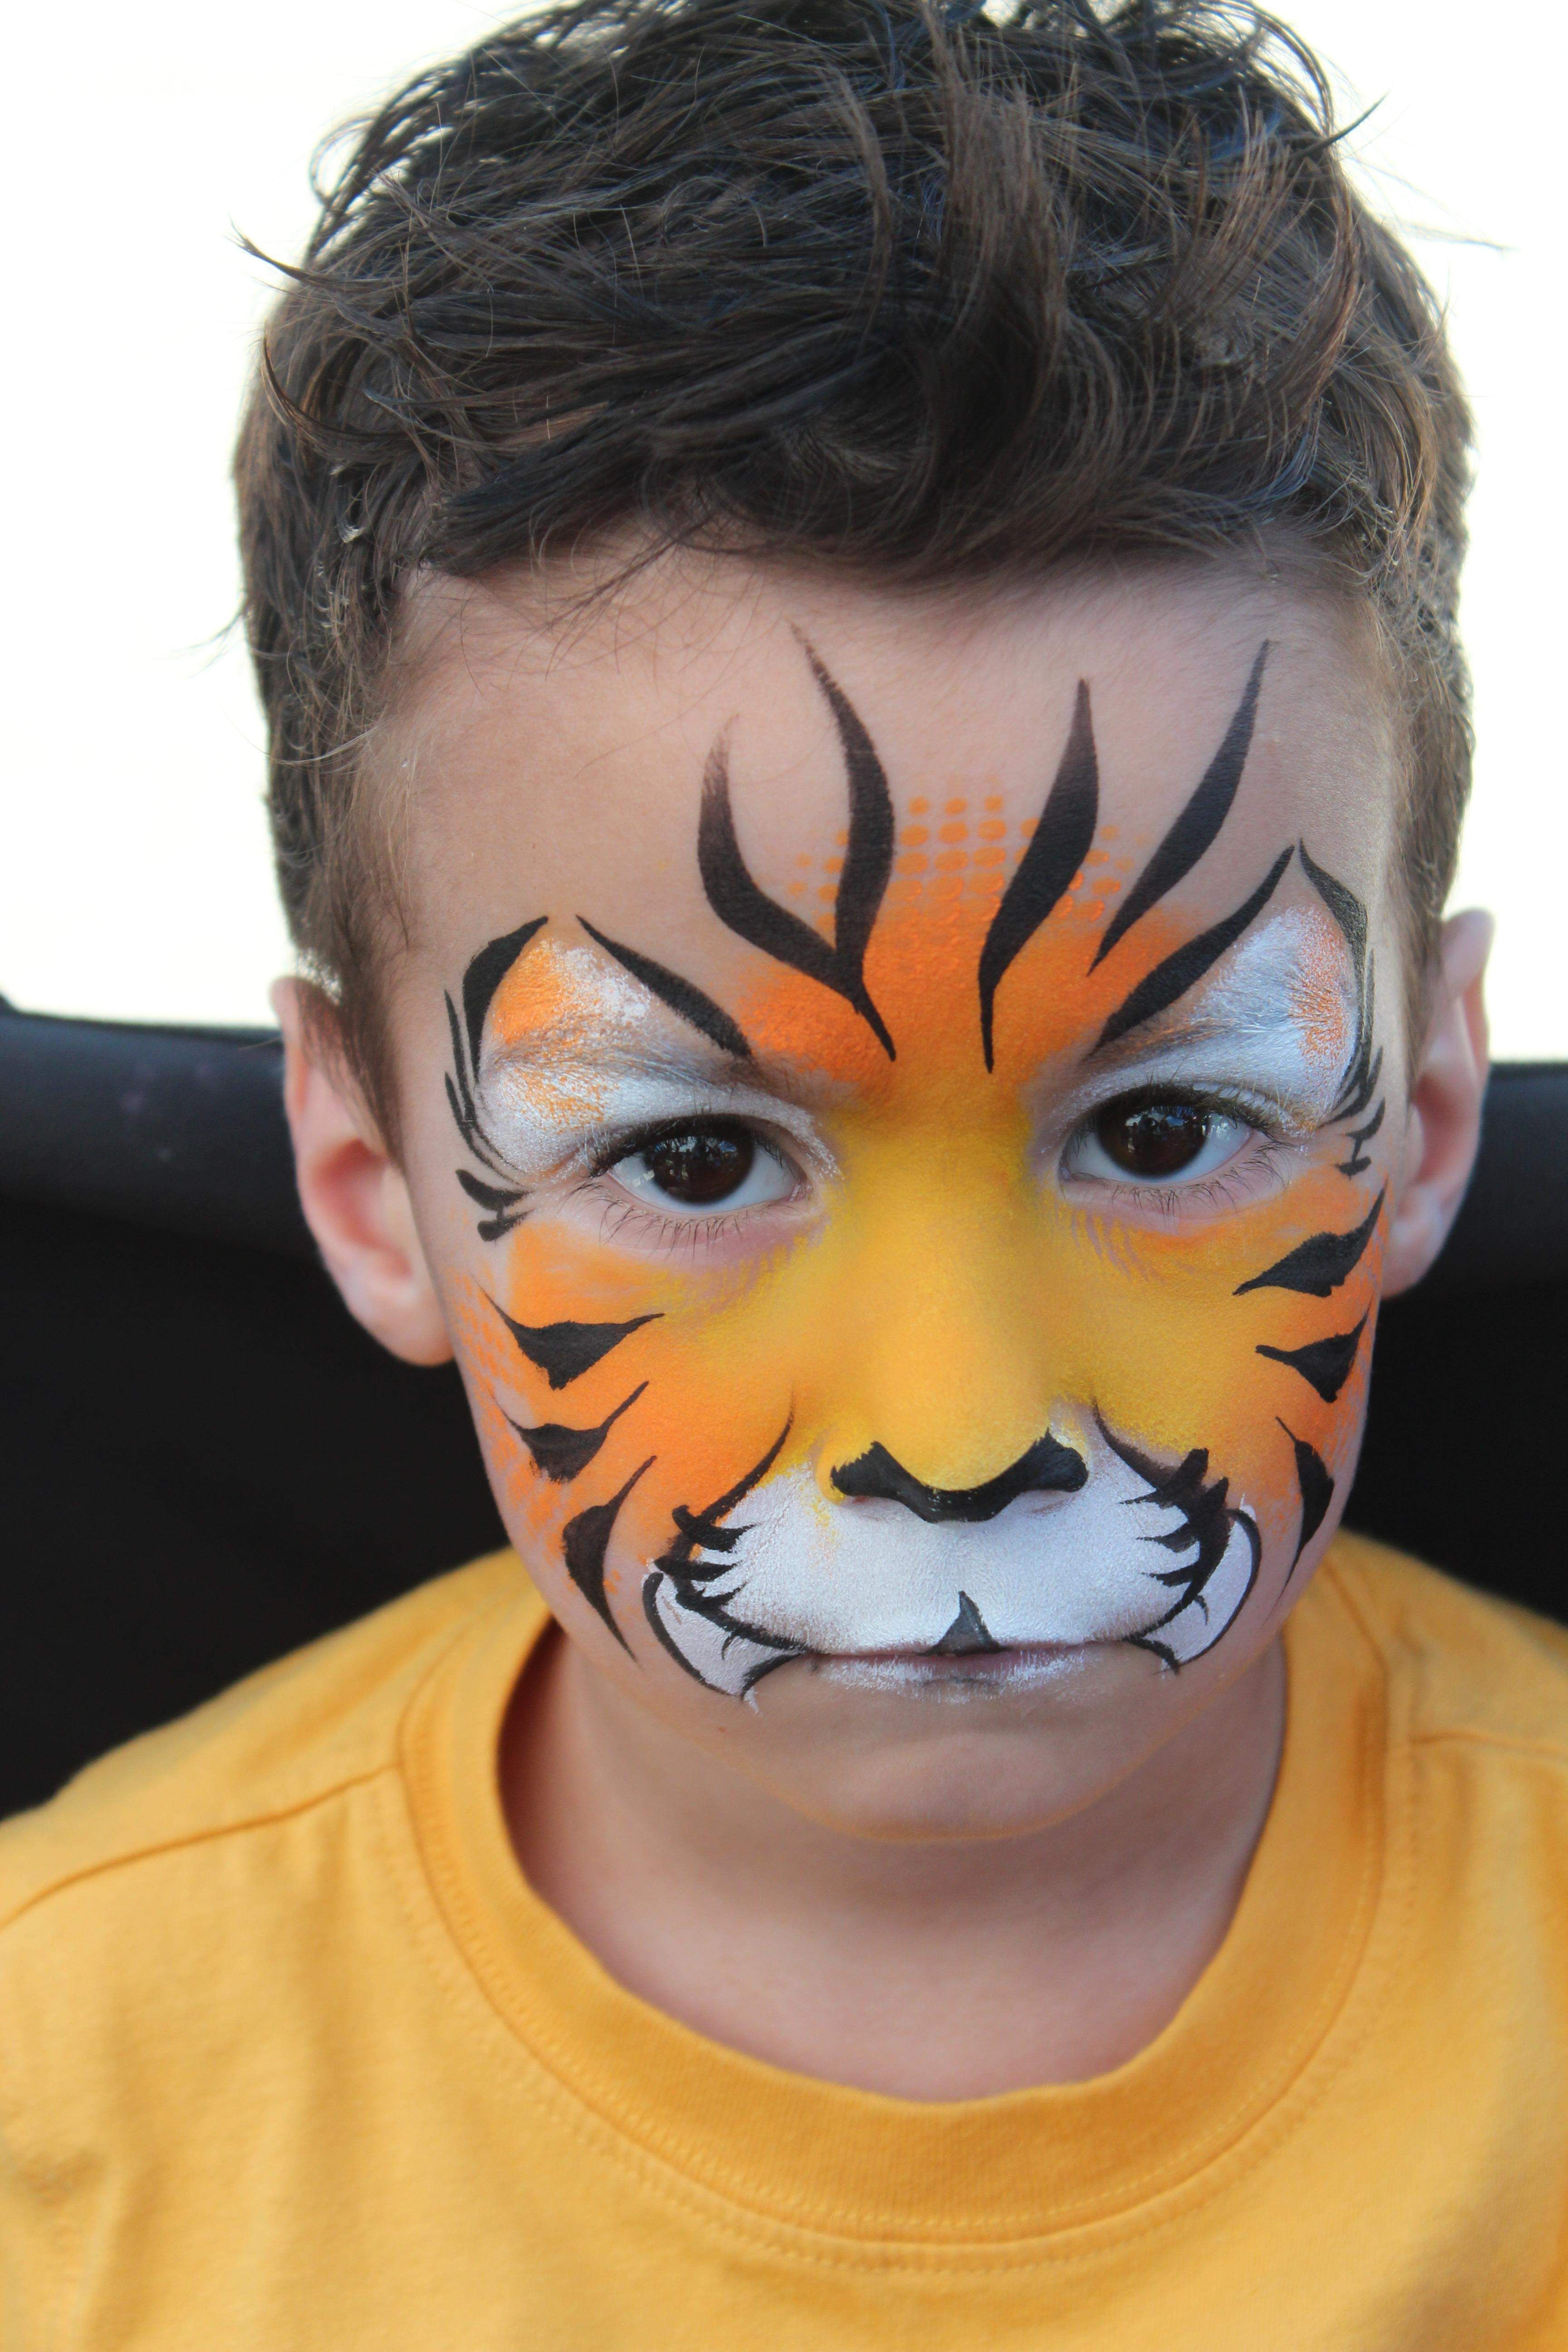 Chicago Face Painting Services in 2020 Face painting